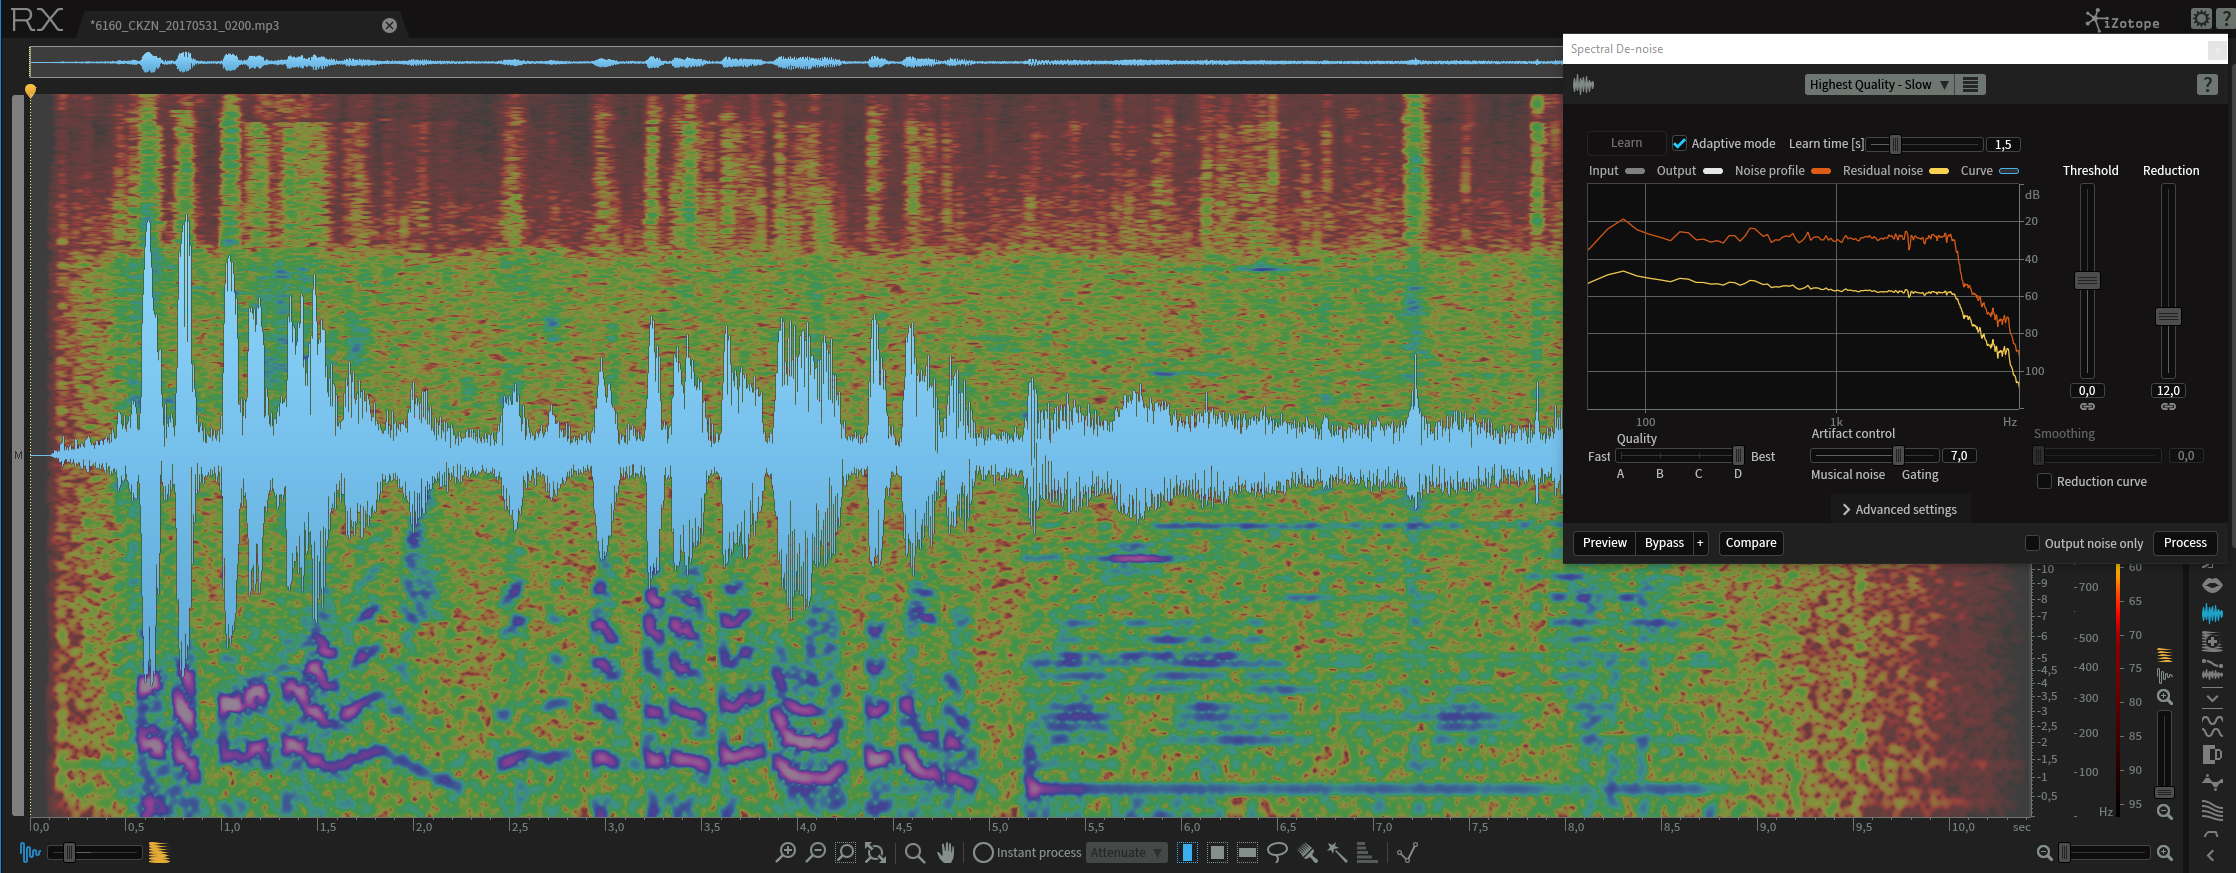 iZotope RX6 – A Miracle in restoring Audio | Nils Schiffhauer – DK8OK